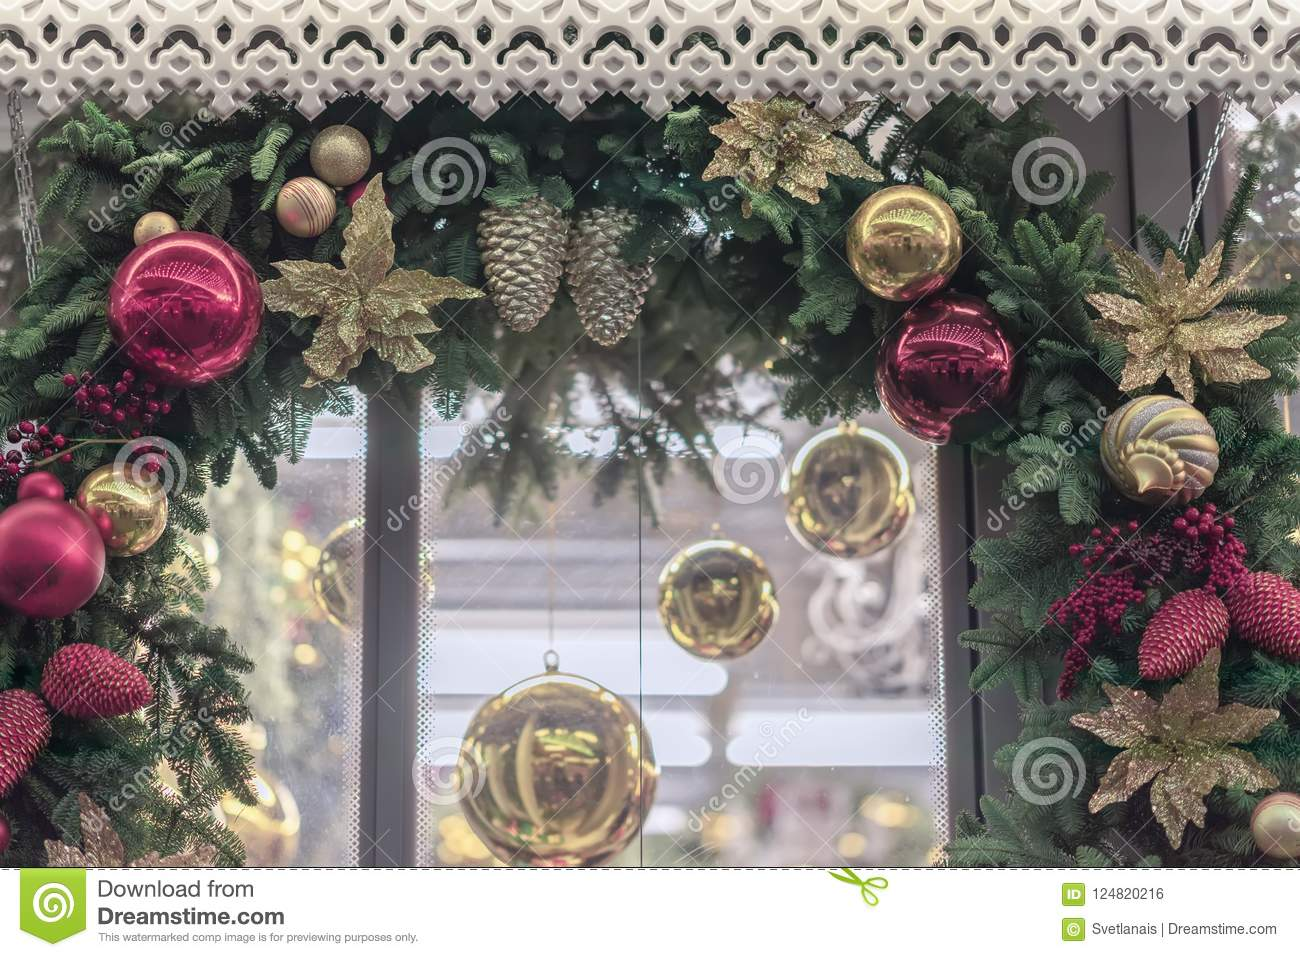 download christmas garland a wreath close up around a window with shiny decorations